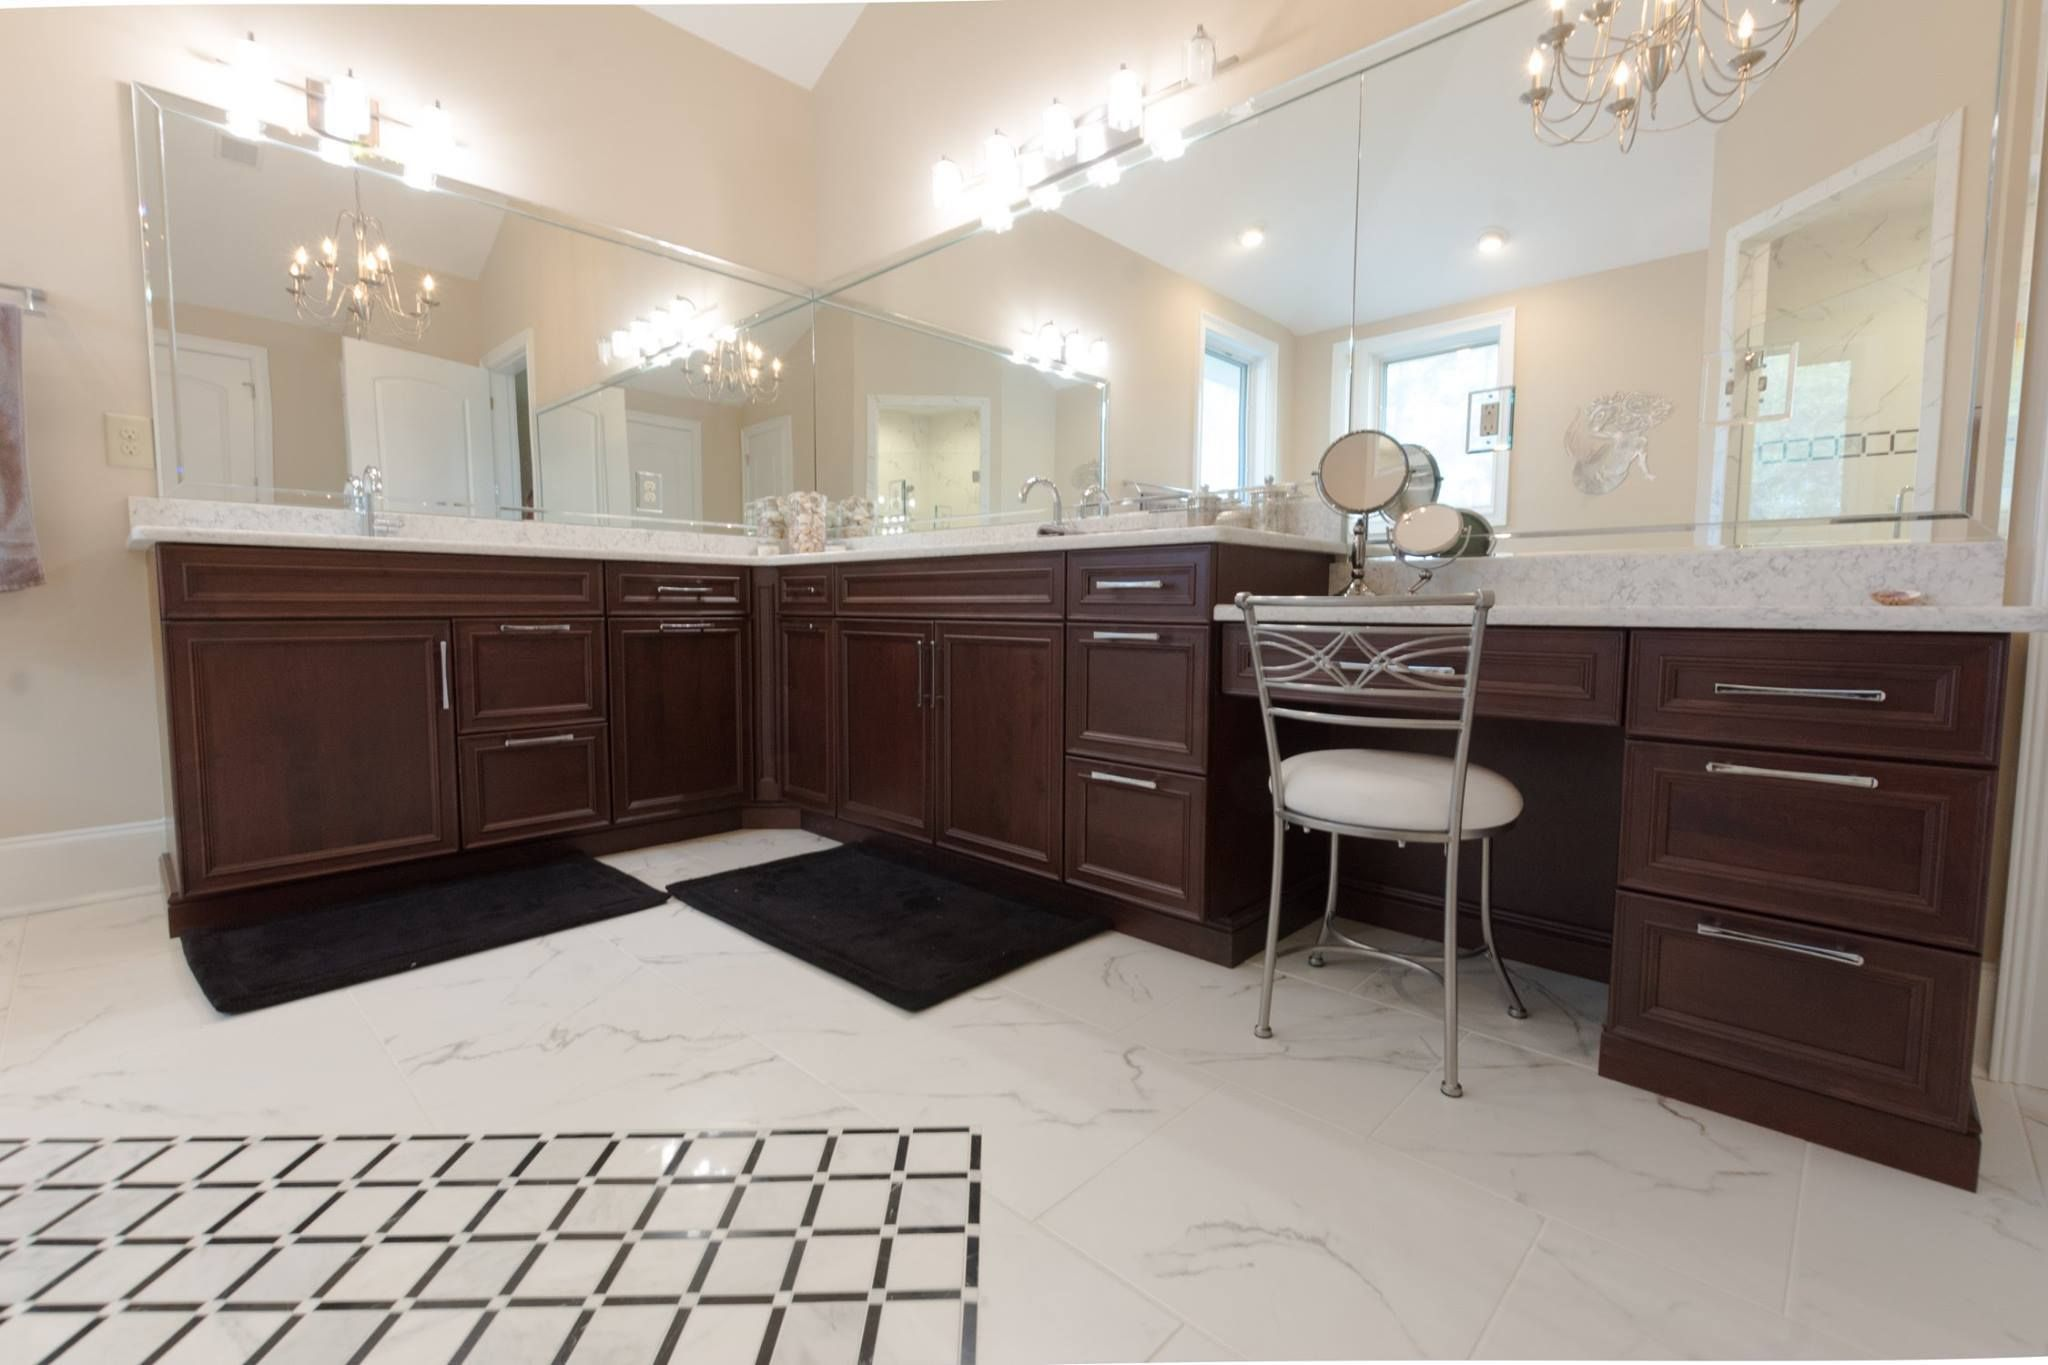 Rich Woodmode Cabinets For A Cozy Bathroom Remodel Bathrooms Bathroomspaces Bathroomremodel Browncabinets Cozy Bathroom Brown Cabinets Bathrooms Remodel